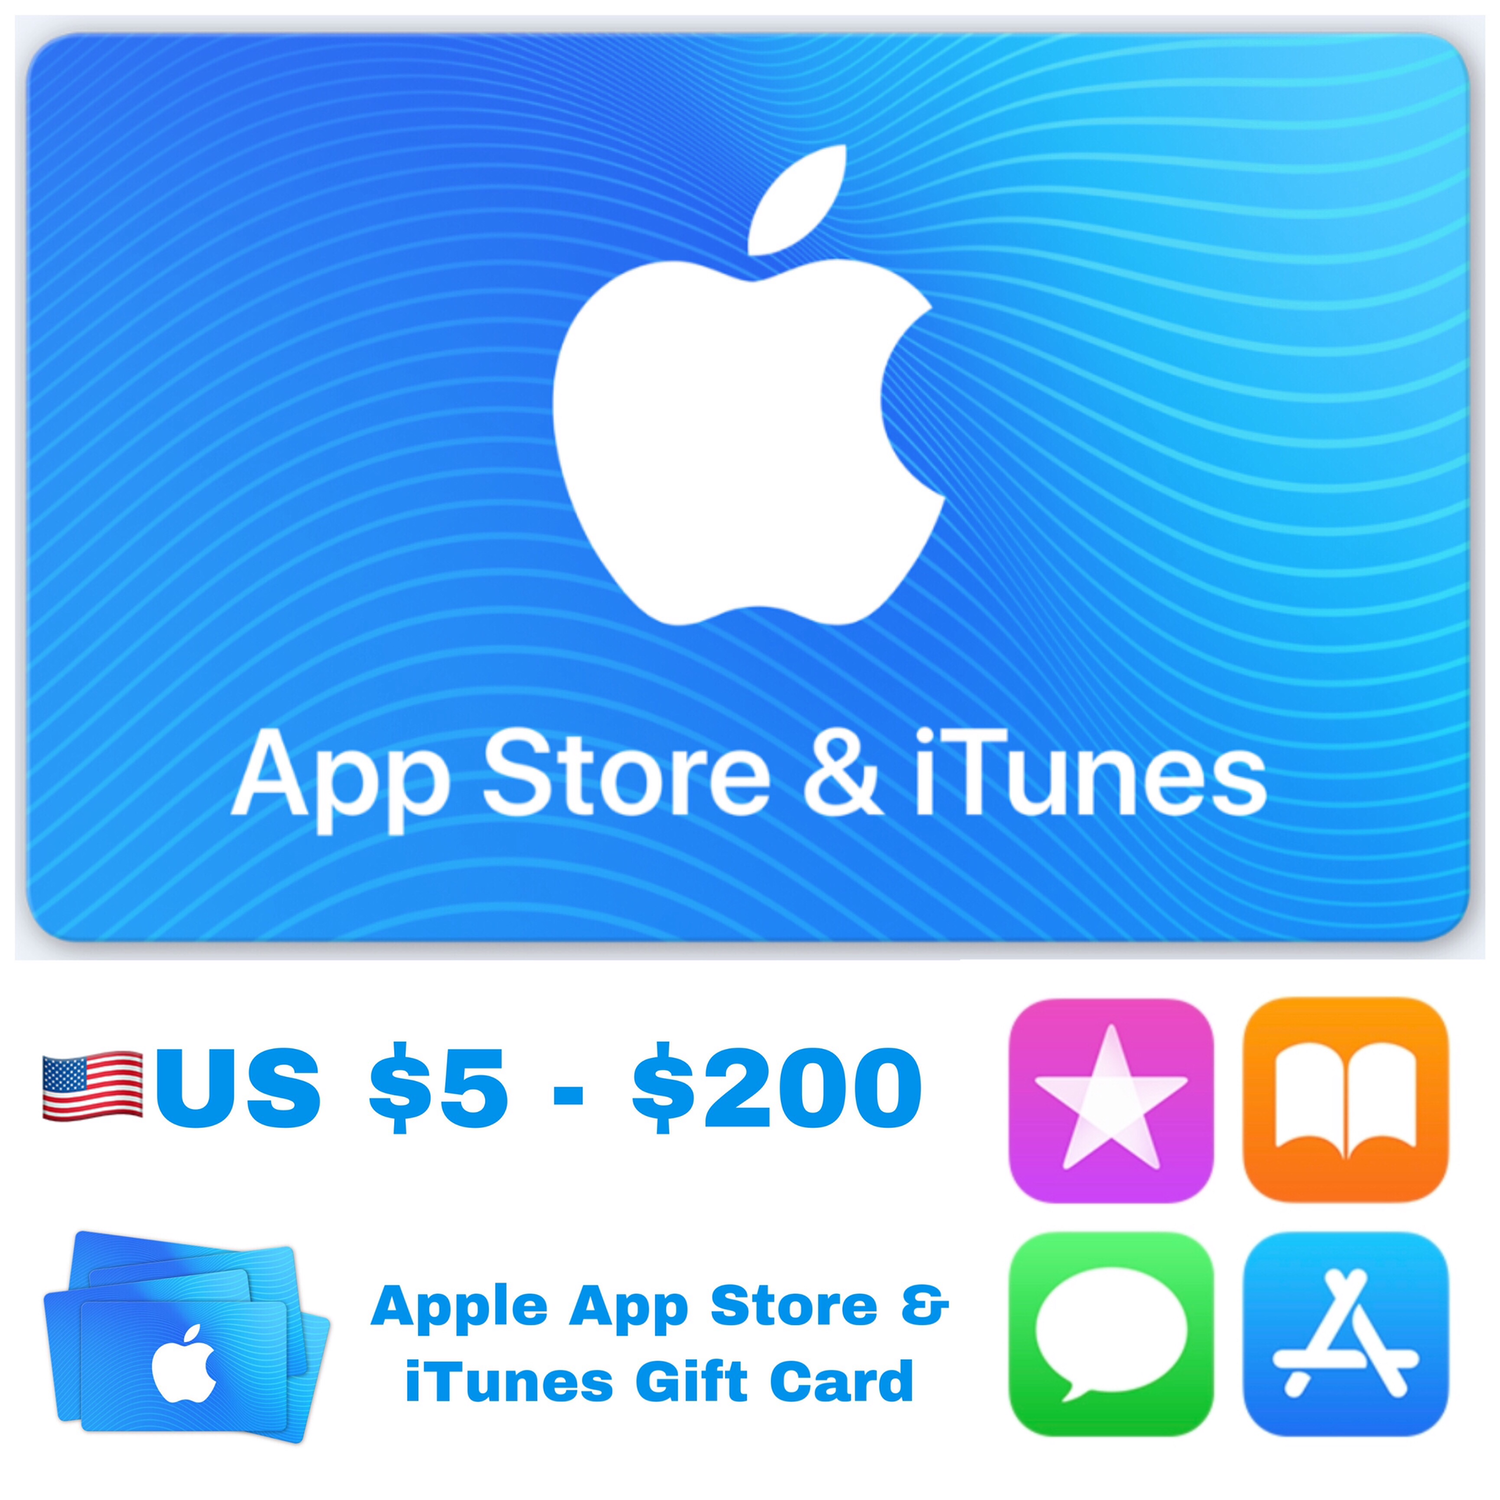 Apple App Store & iTunes Gift Cards US $5 - $200